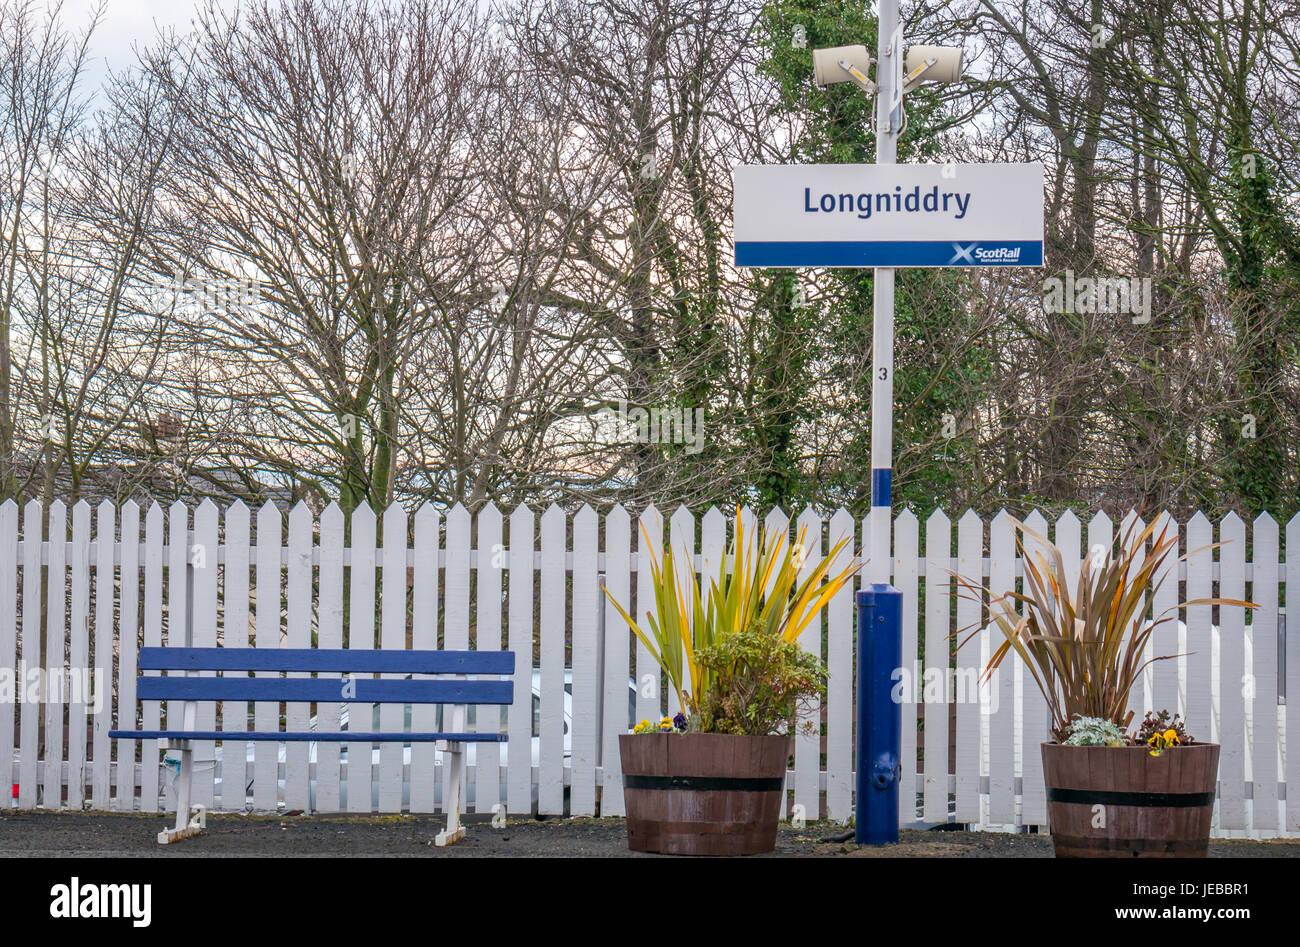 Longniddry train station platform sign with benches, flowerpots and white picket fence, East Lothian, Scotland, - Stock Image